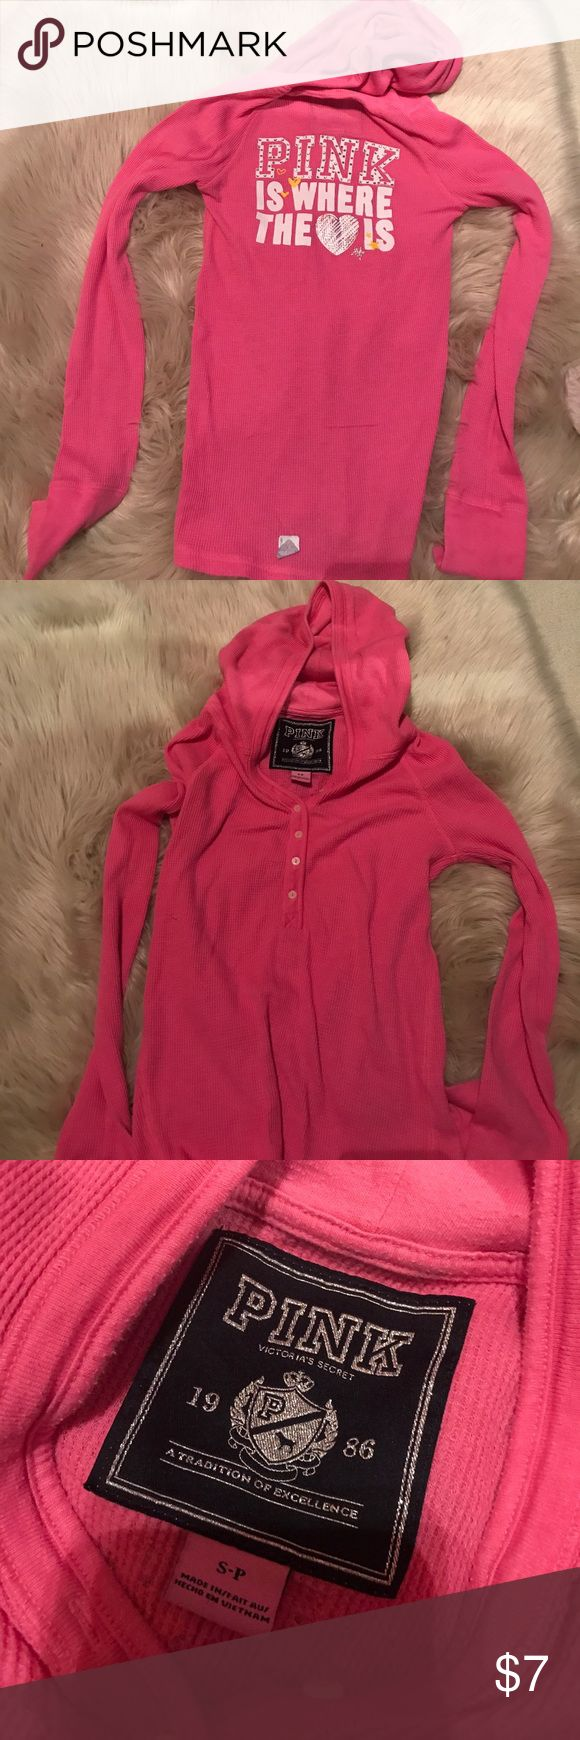 VS PINK Waffle fabric Henley with hood PINK Victoria's Secret waffle fabric Henley with design on the back. Rhinestone accent, barely worn. PINK Intimates & Sleepwear Pajamas